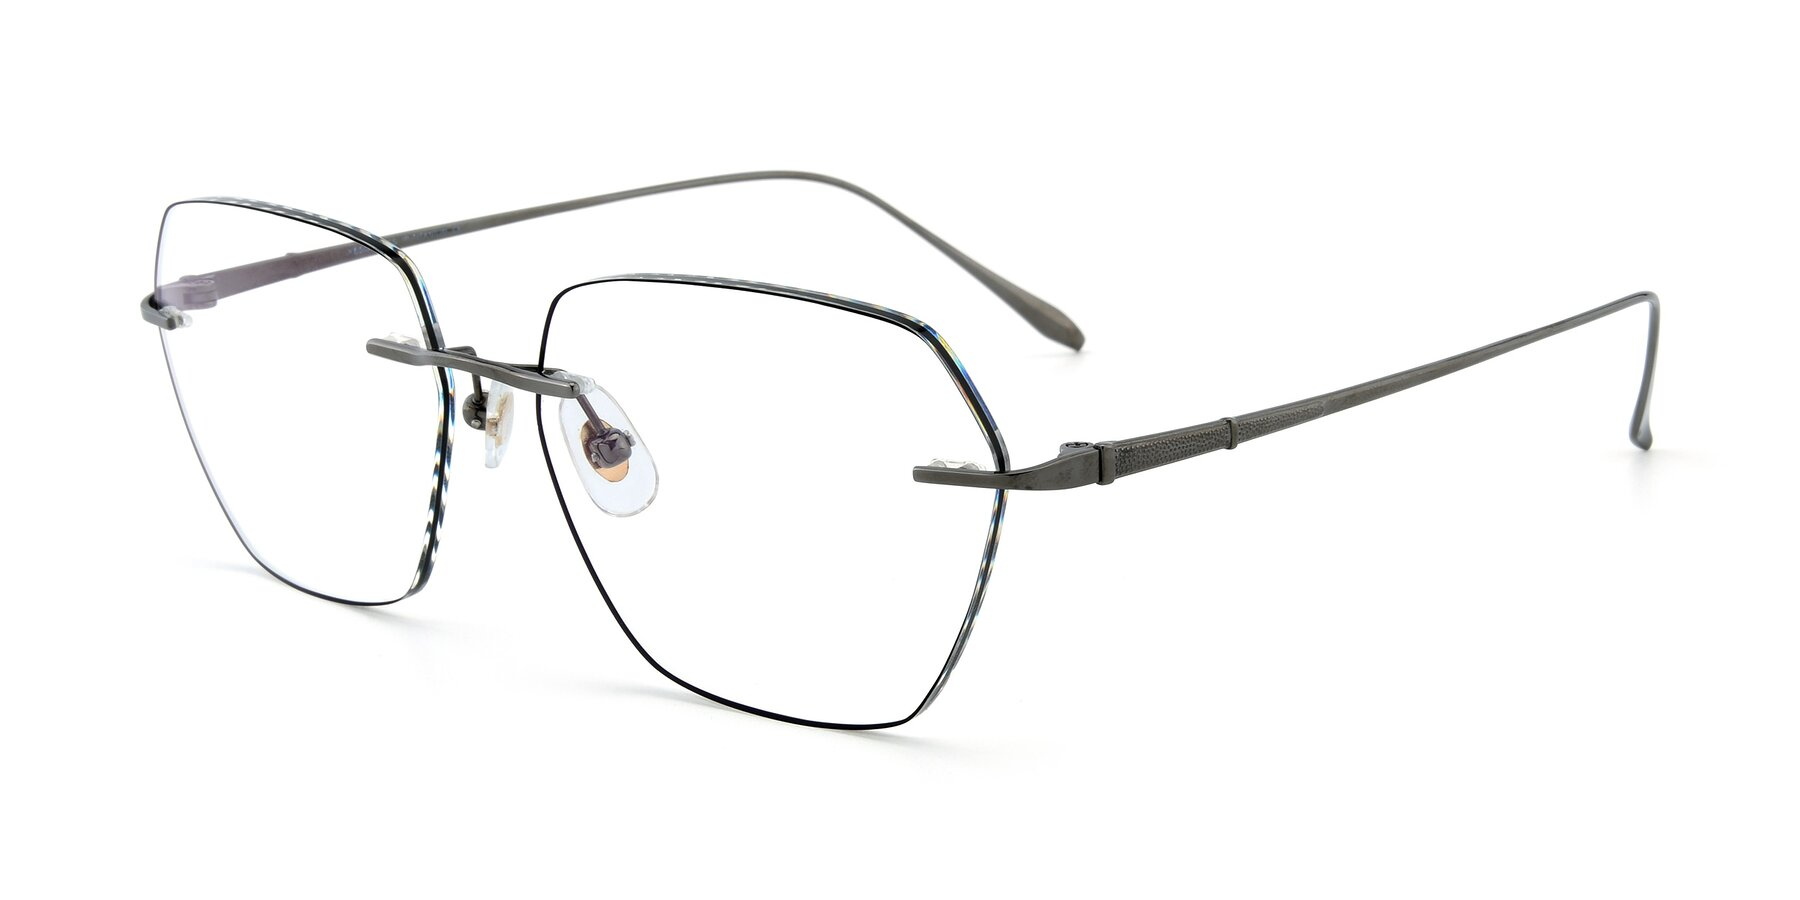 Angle of Y7018 in Gun-Black with Clear Eyeglass Lenses